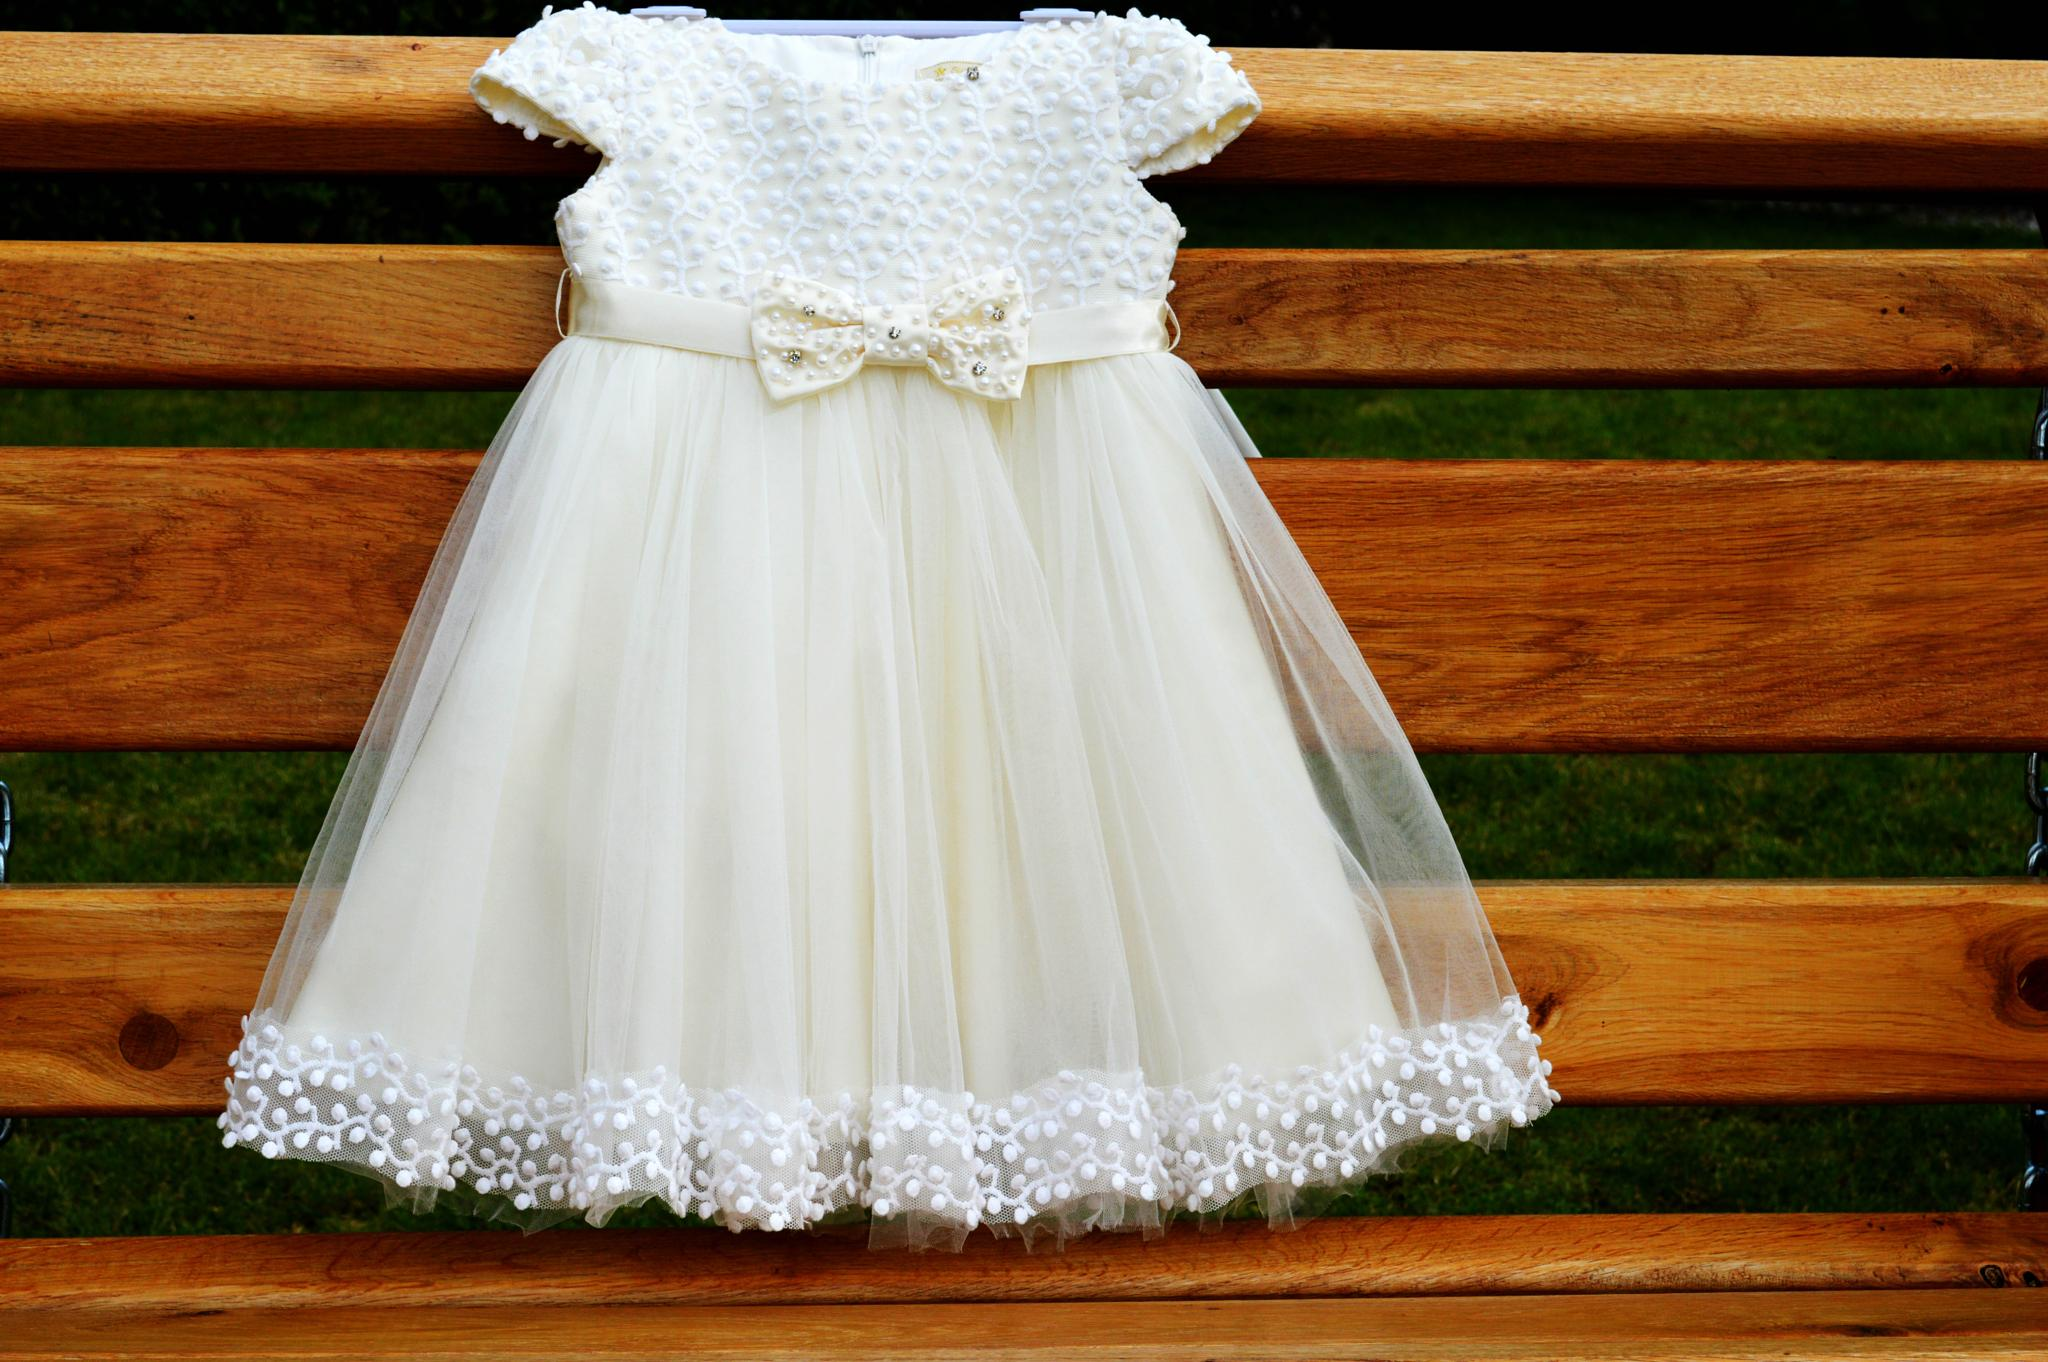 Christening dress by Moni Mon ( M&M Fotografija )